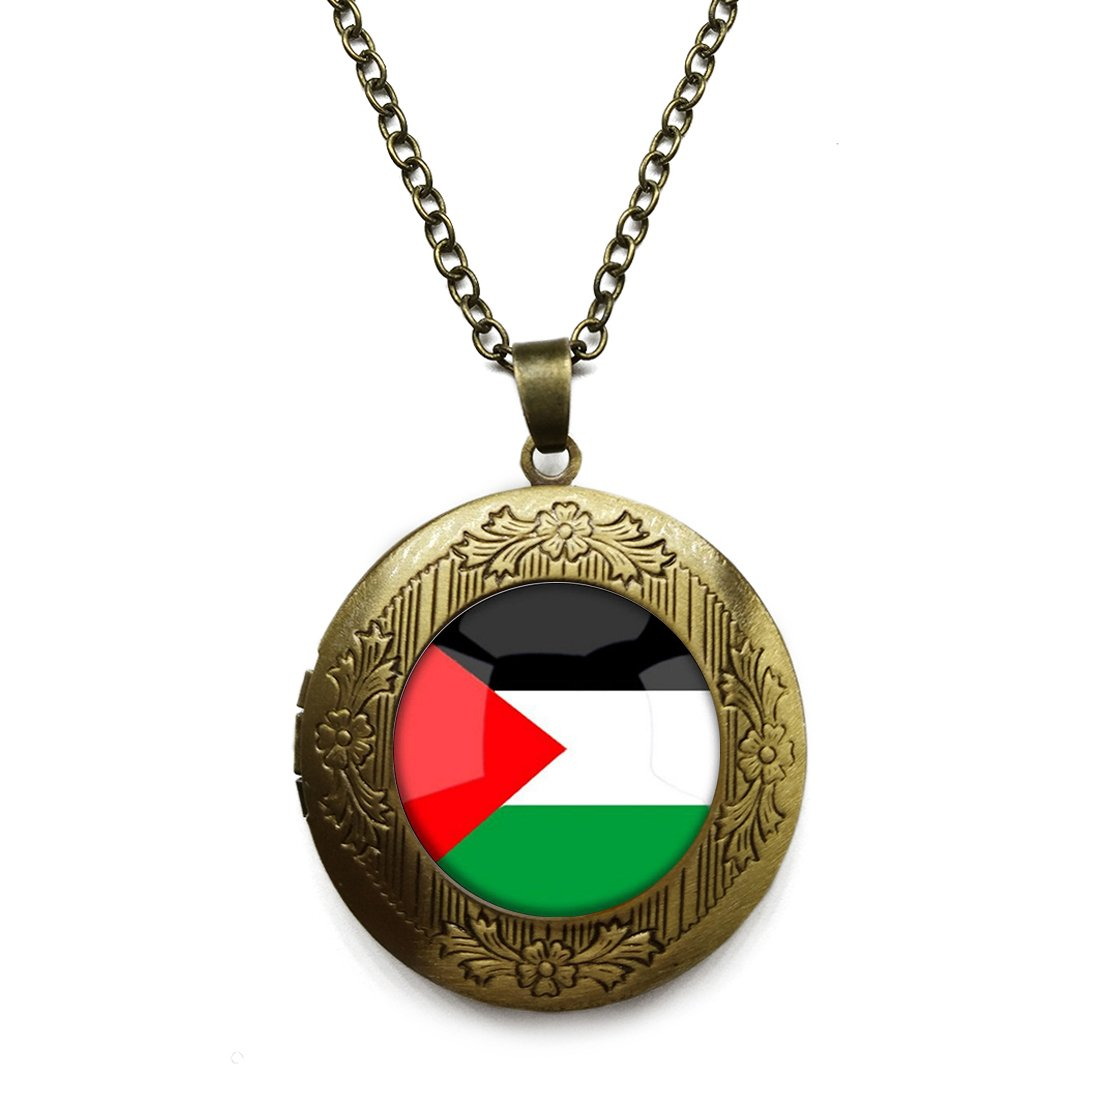 Alloy Pendant The Hashemite Kingdom of Jordan National Flag Vintage Chain Necklace